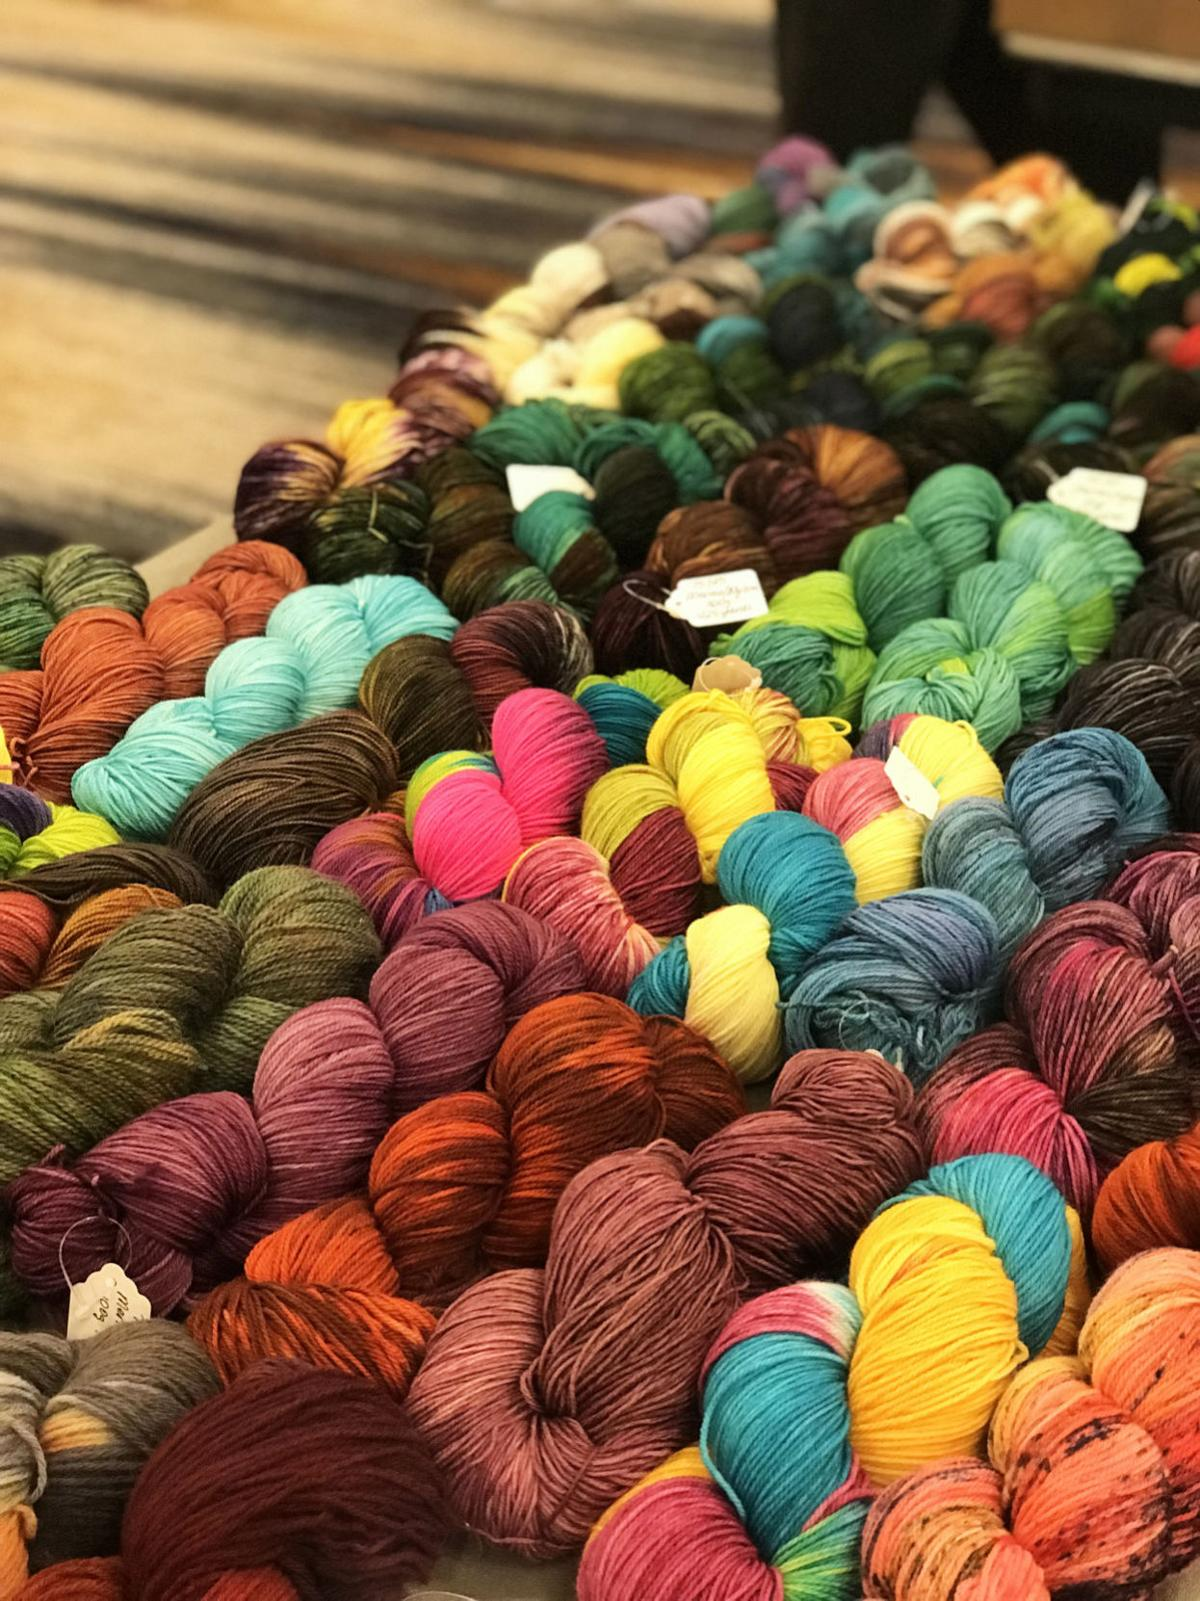 Rows of hand dyed yard